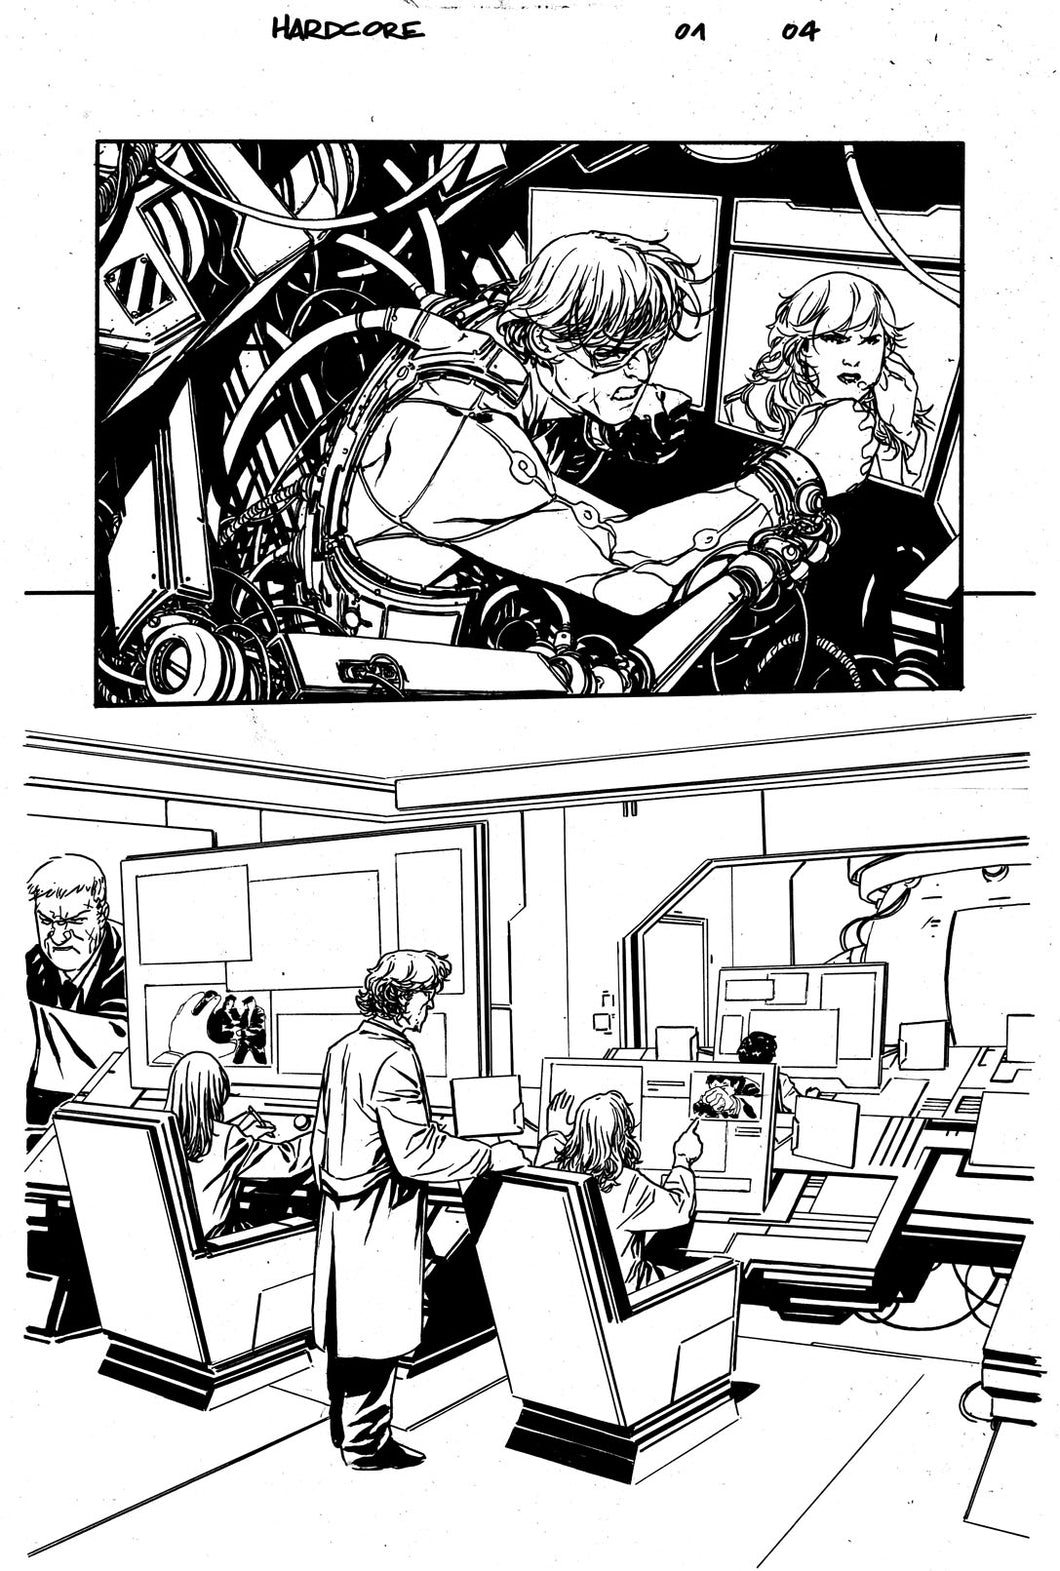 Hardcore #1 Original art - Page 04 by Alessandro Vitti